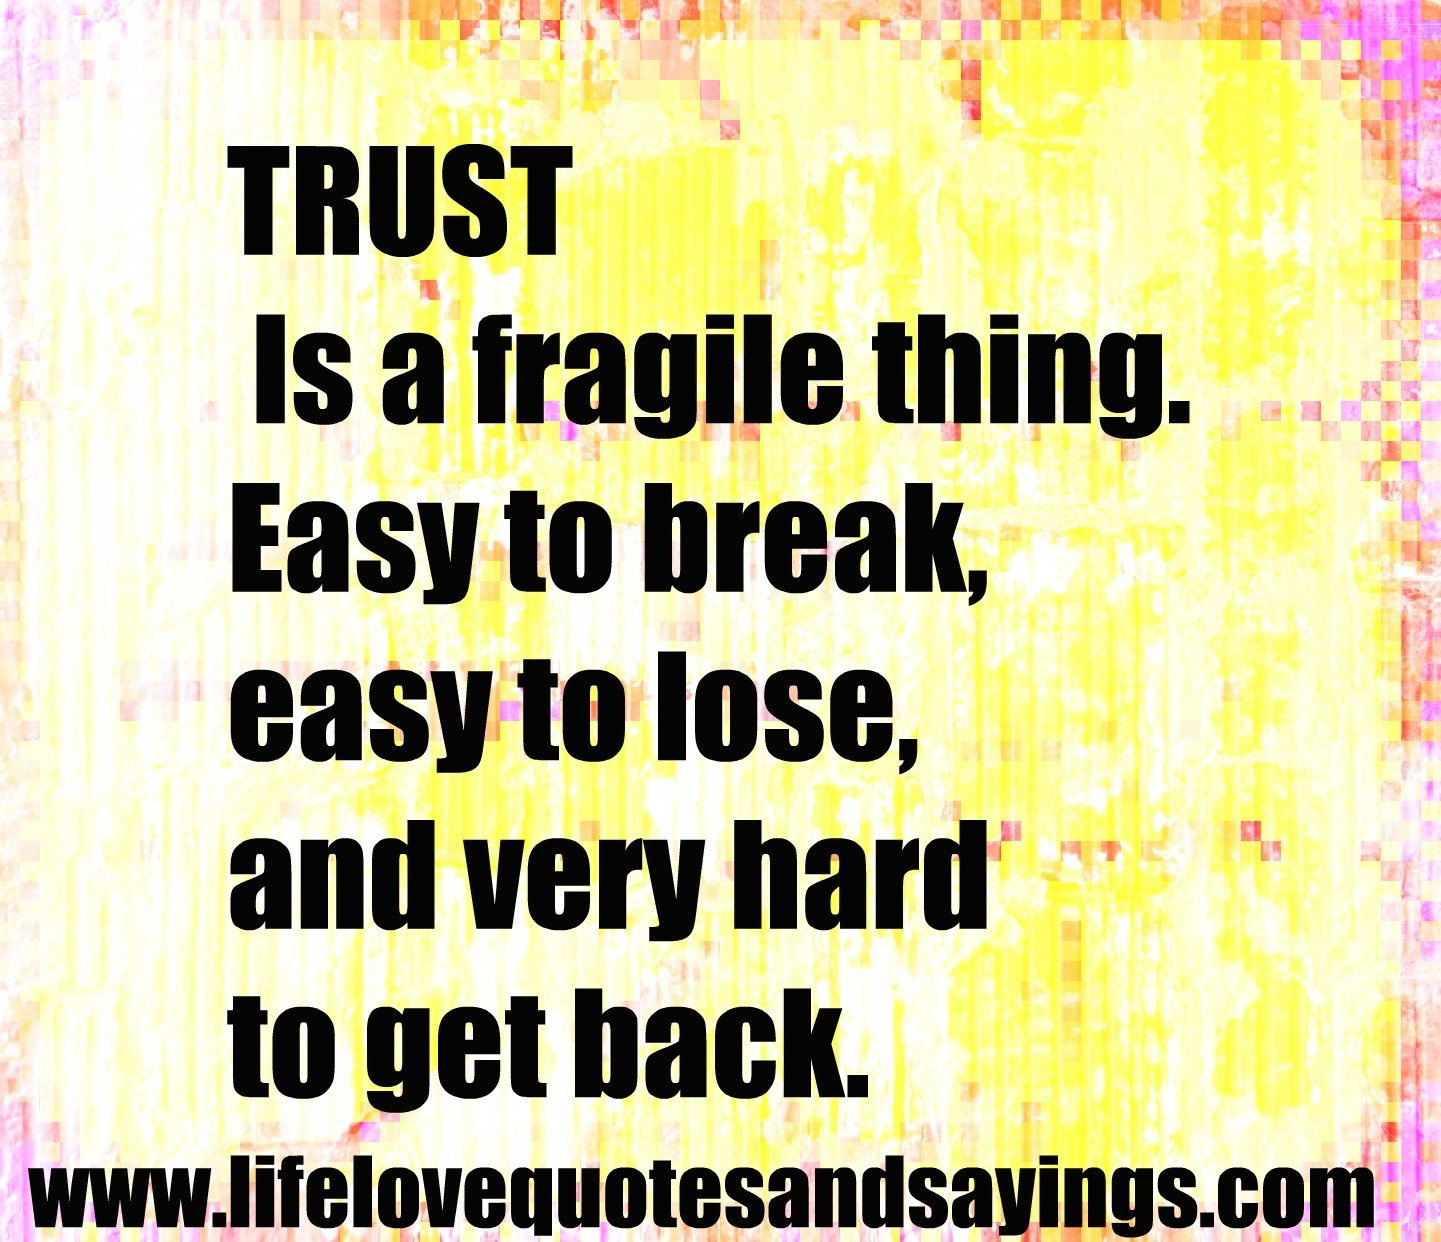 gaining trust back quotes relationship ending